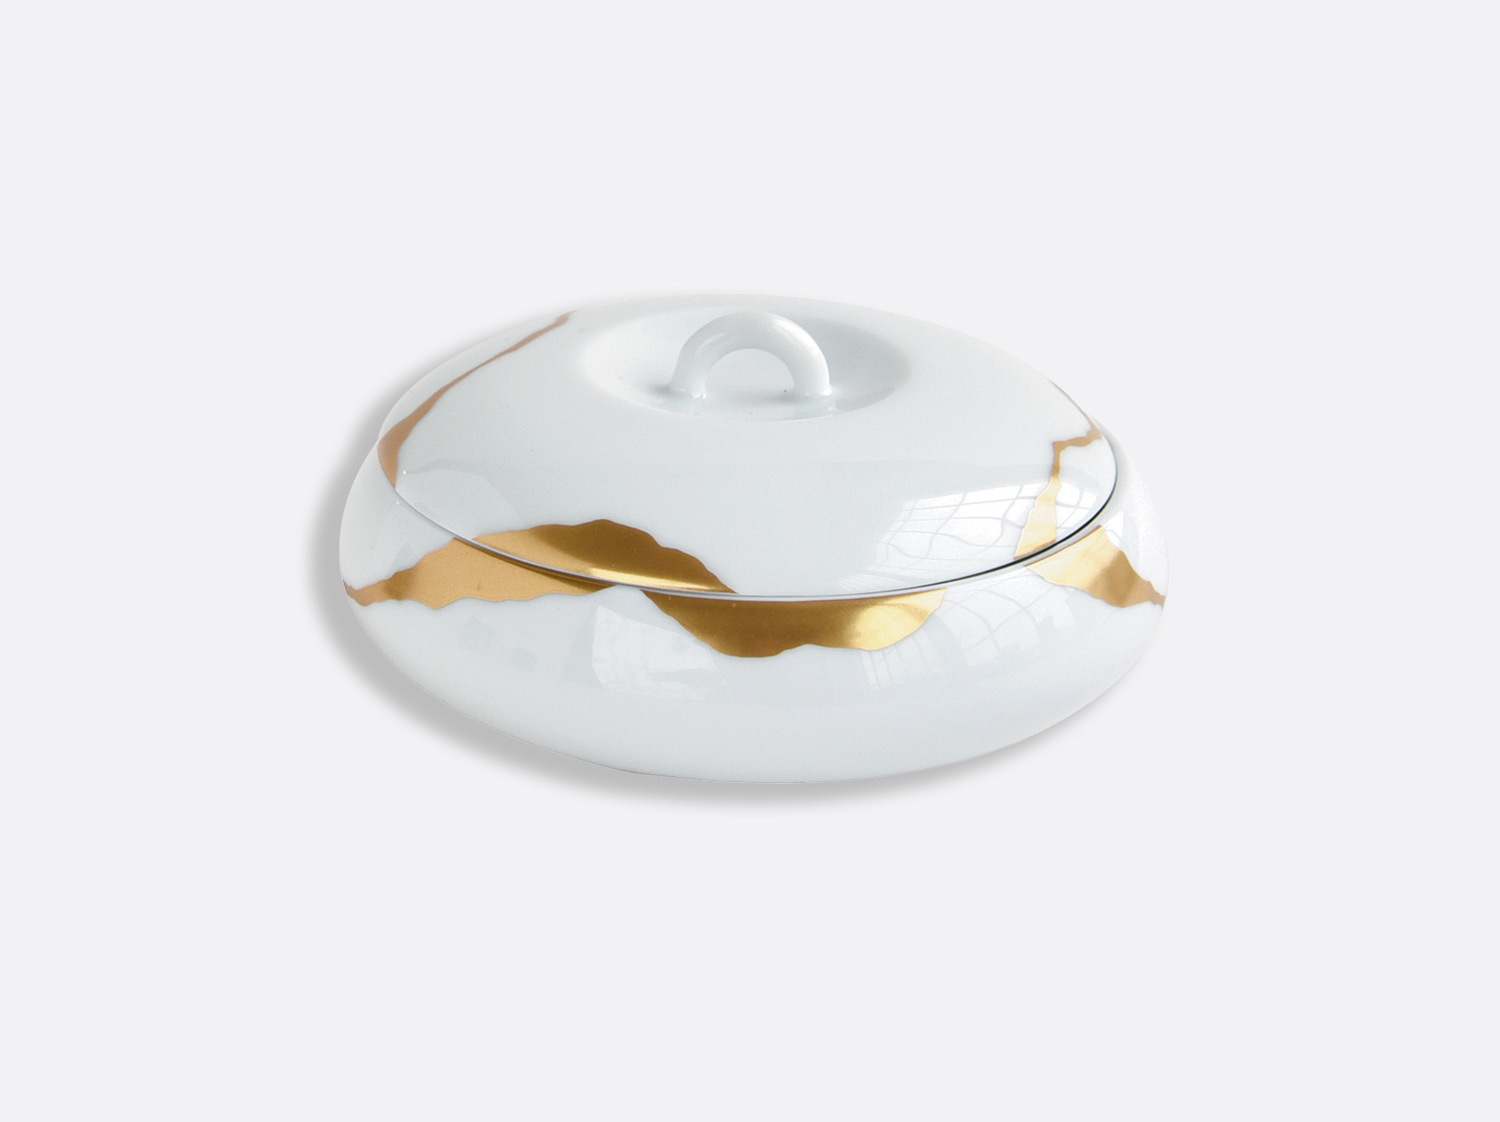 Boîte galet en porcelaine de la collection Kintsugi Bernardaud